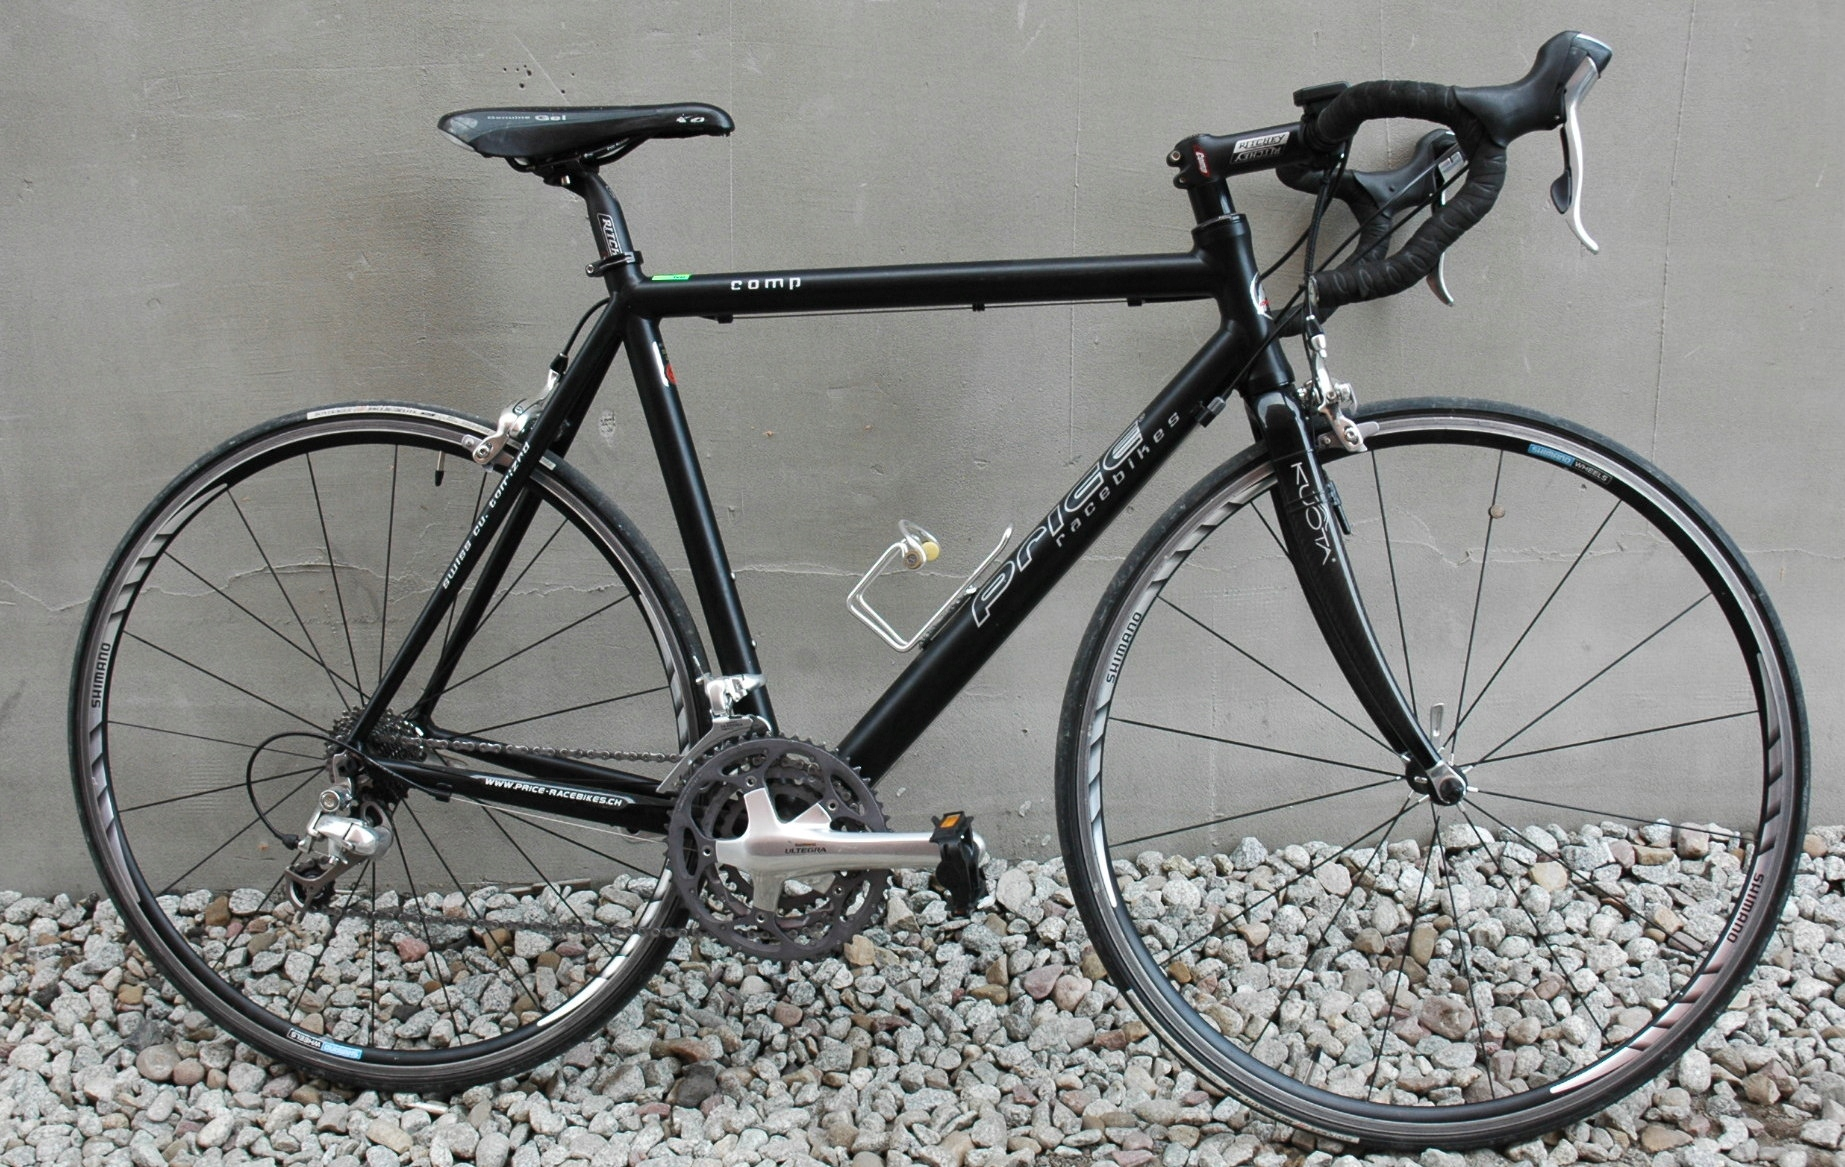 PRICE SWISS MADE na ULTEGRA -8,6 kg - STAN IDEALNY